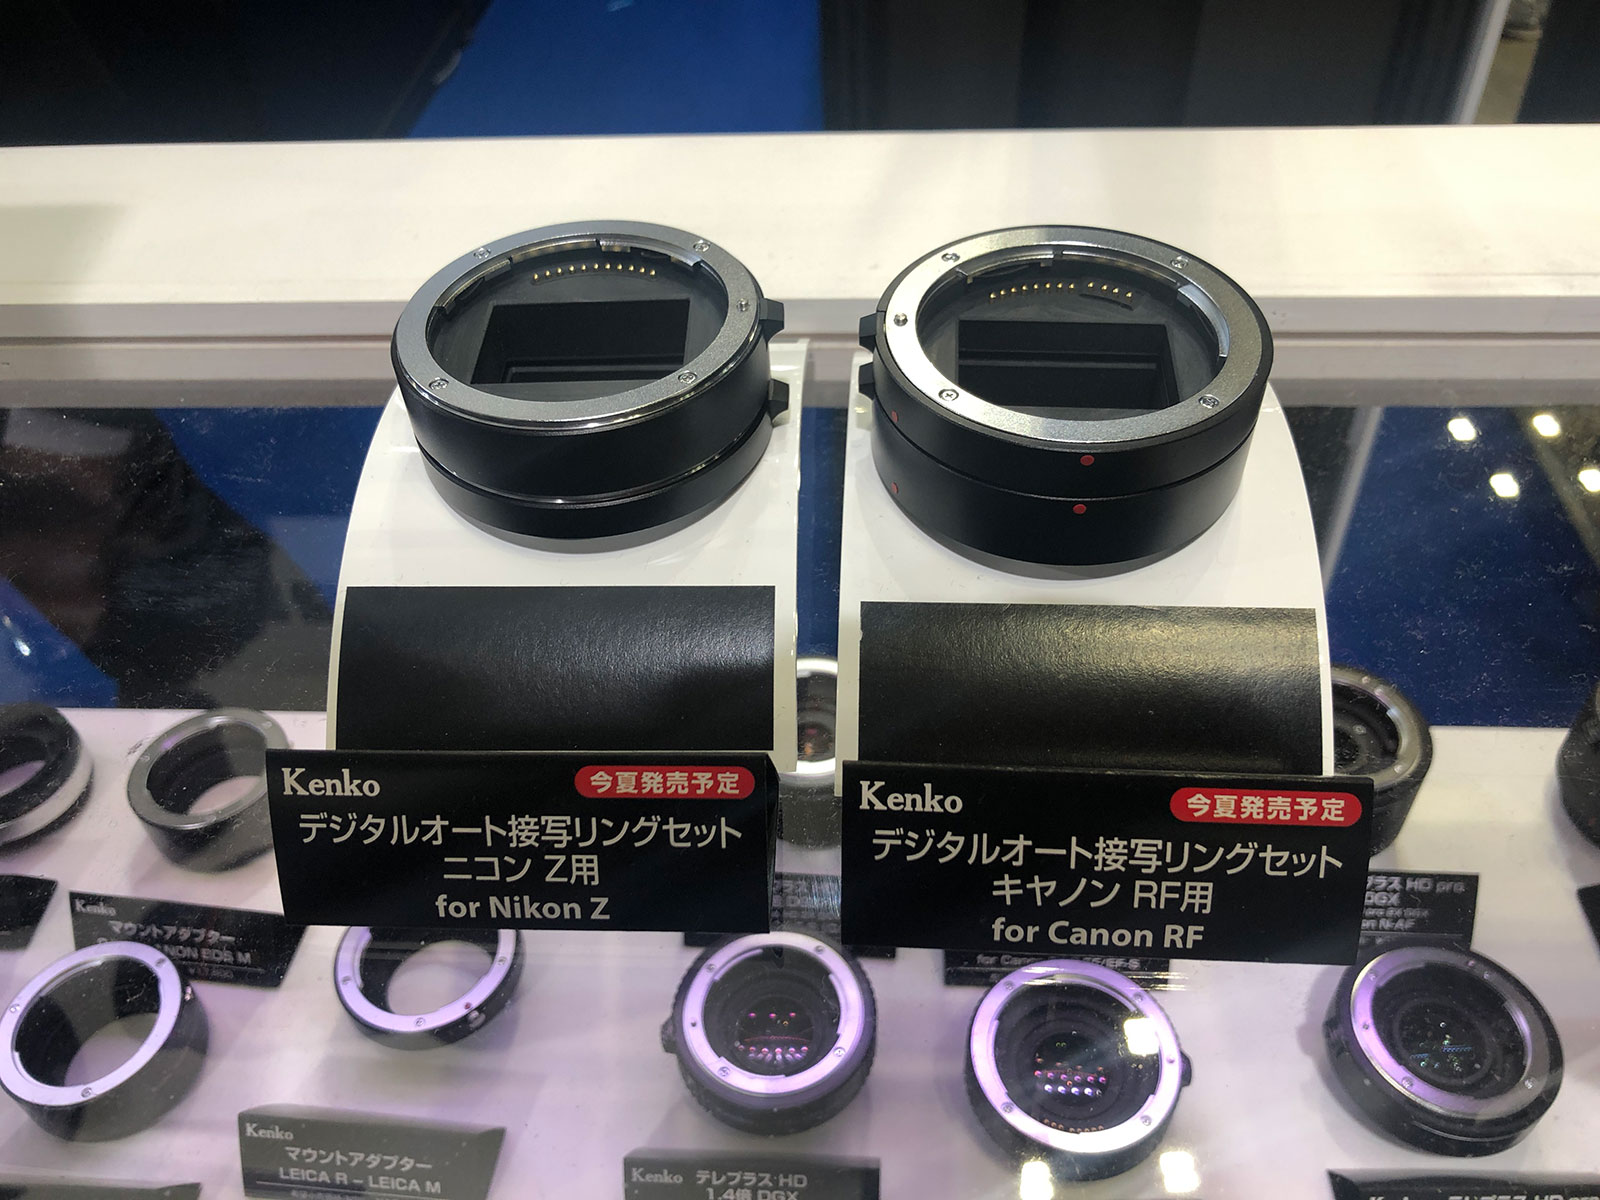 A new and coming soon product showcased in this corner is Kenko Digital Auto Extension Tube Set for the latest Nikon Z mount and Canon RF mount.